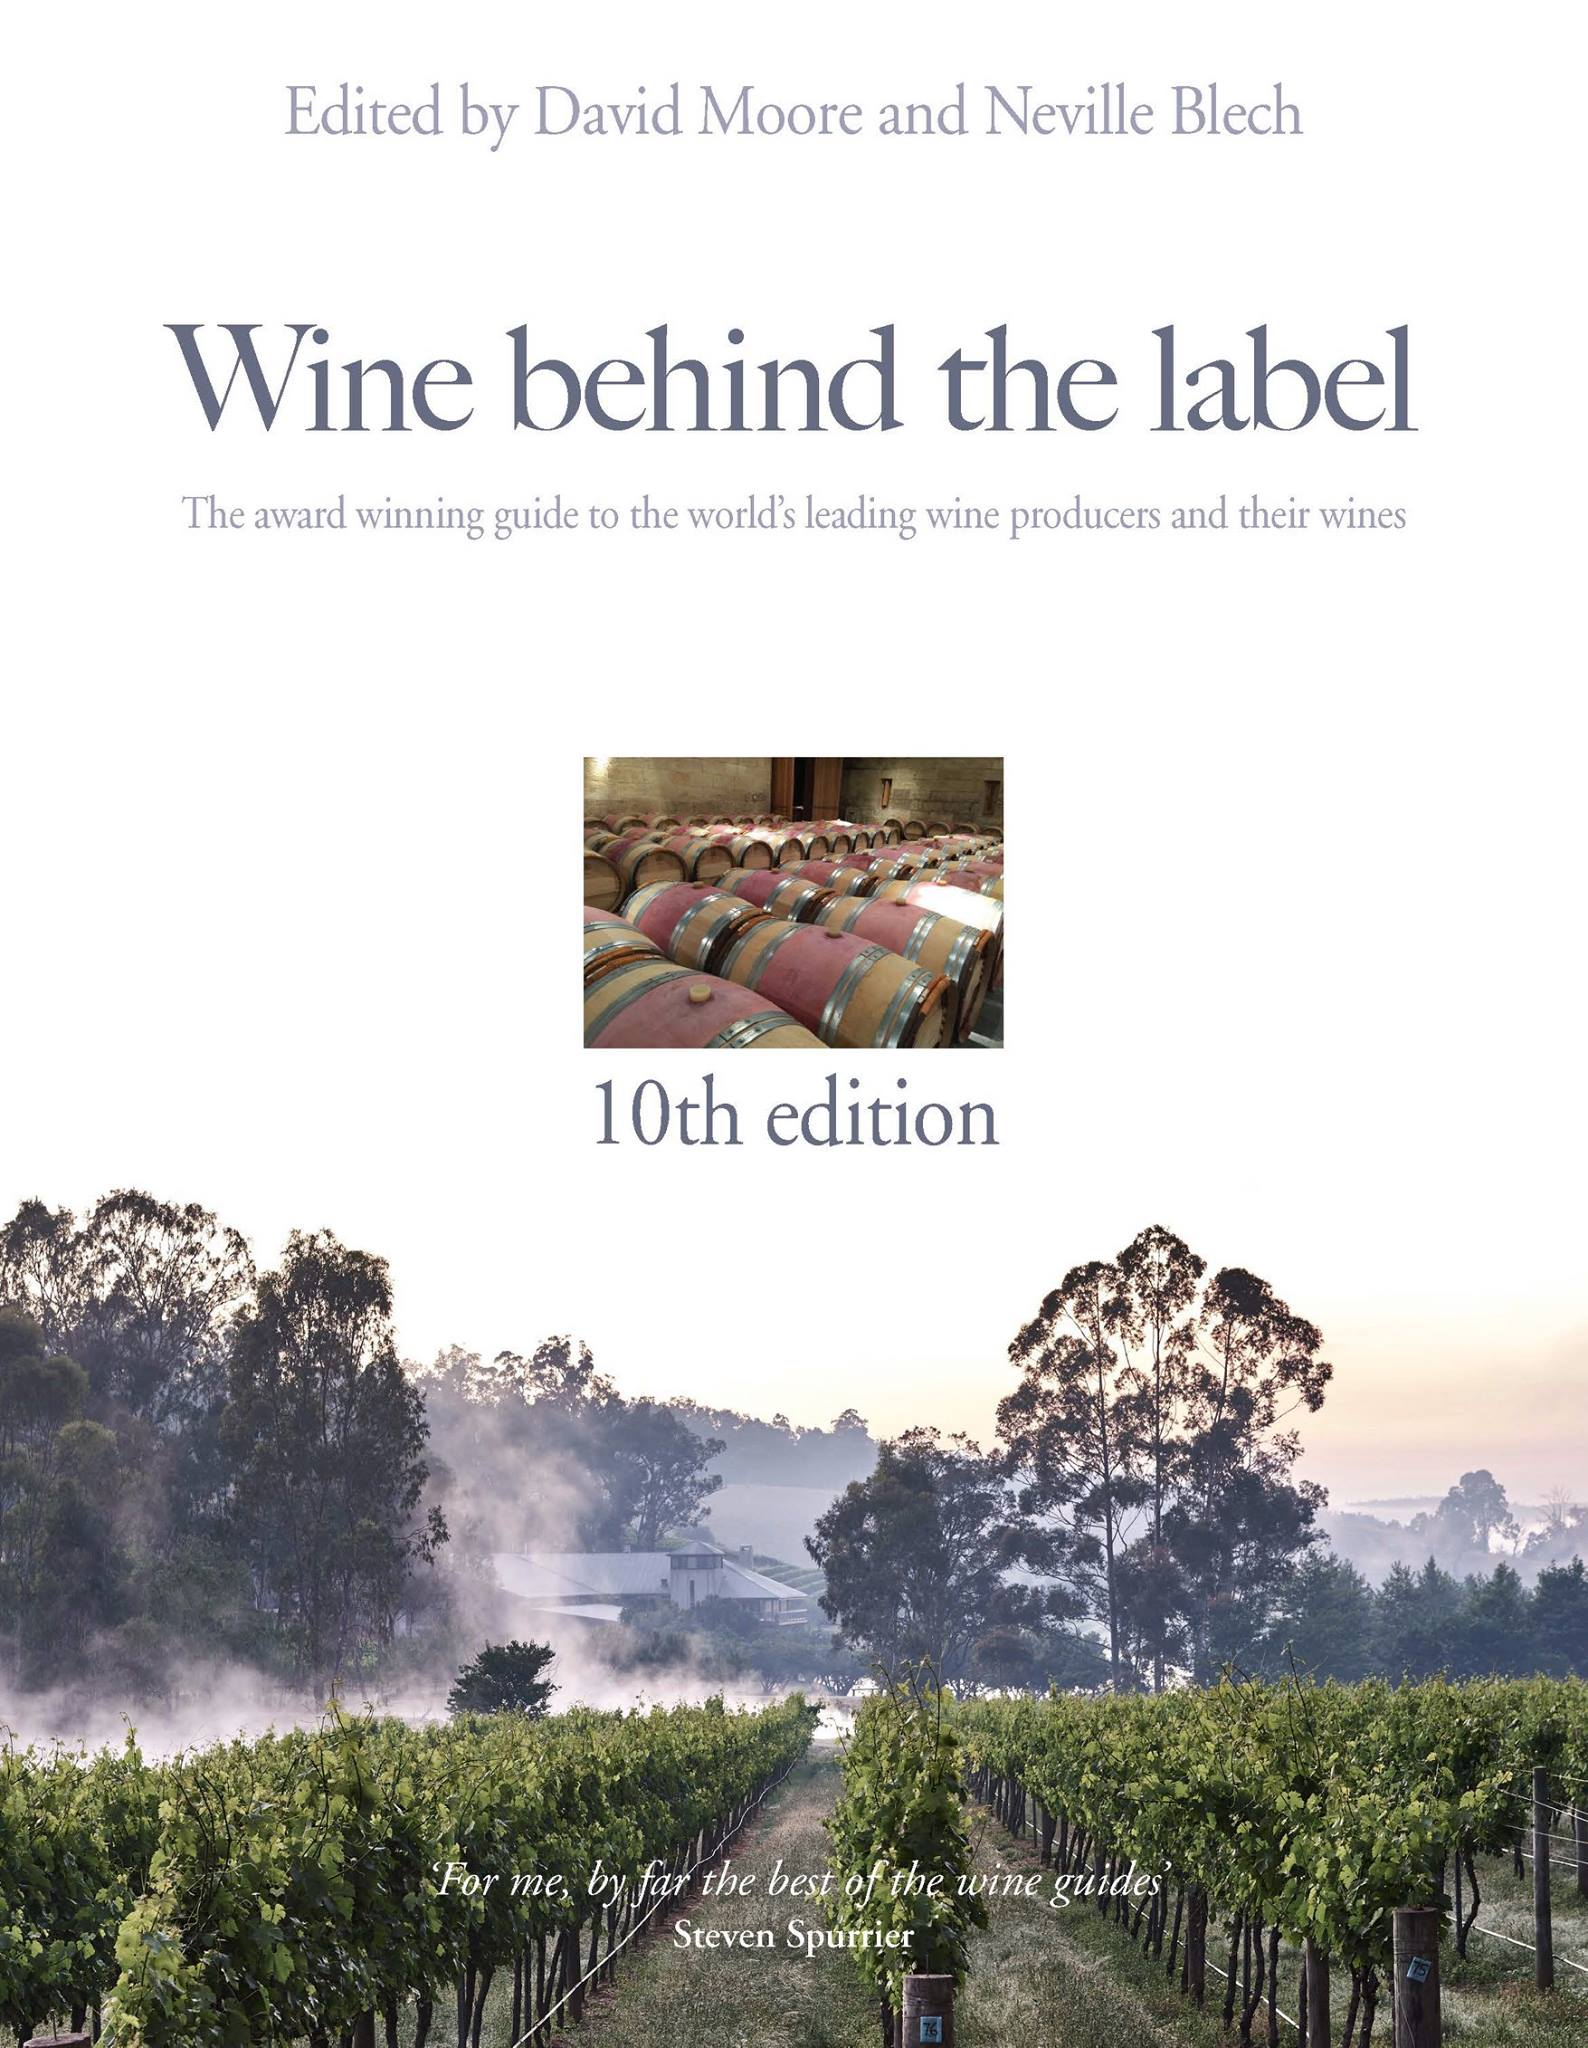 La Peira: one of a select list of estates in France to receive a ✪✪✪✪✪ rating in 10th edition Wine Behind the Label Guide La Peira